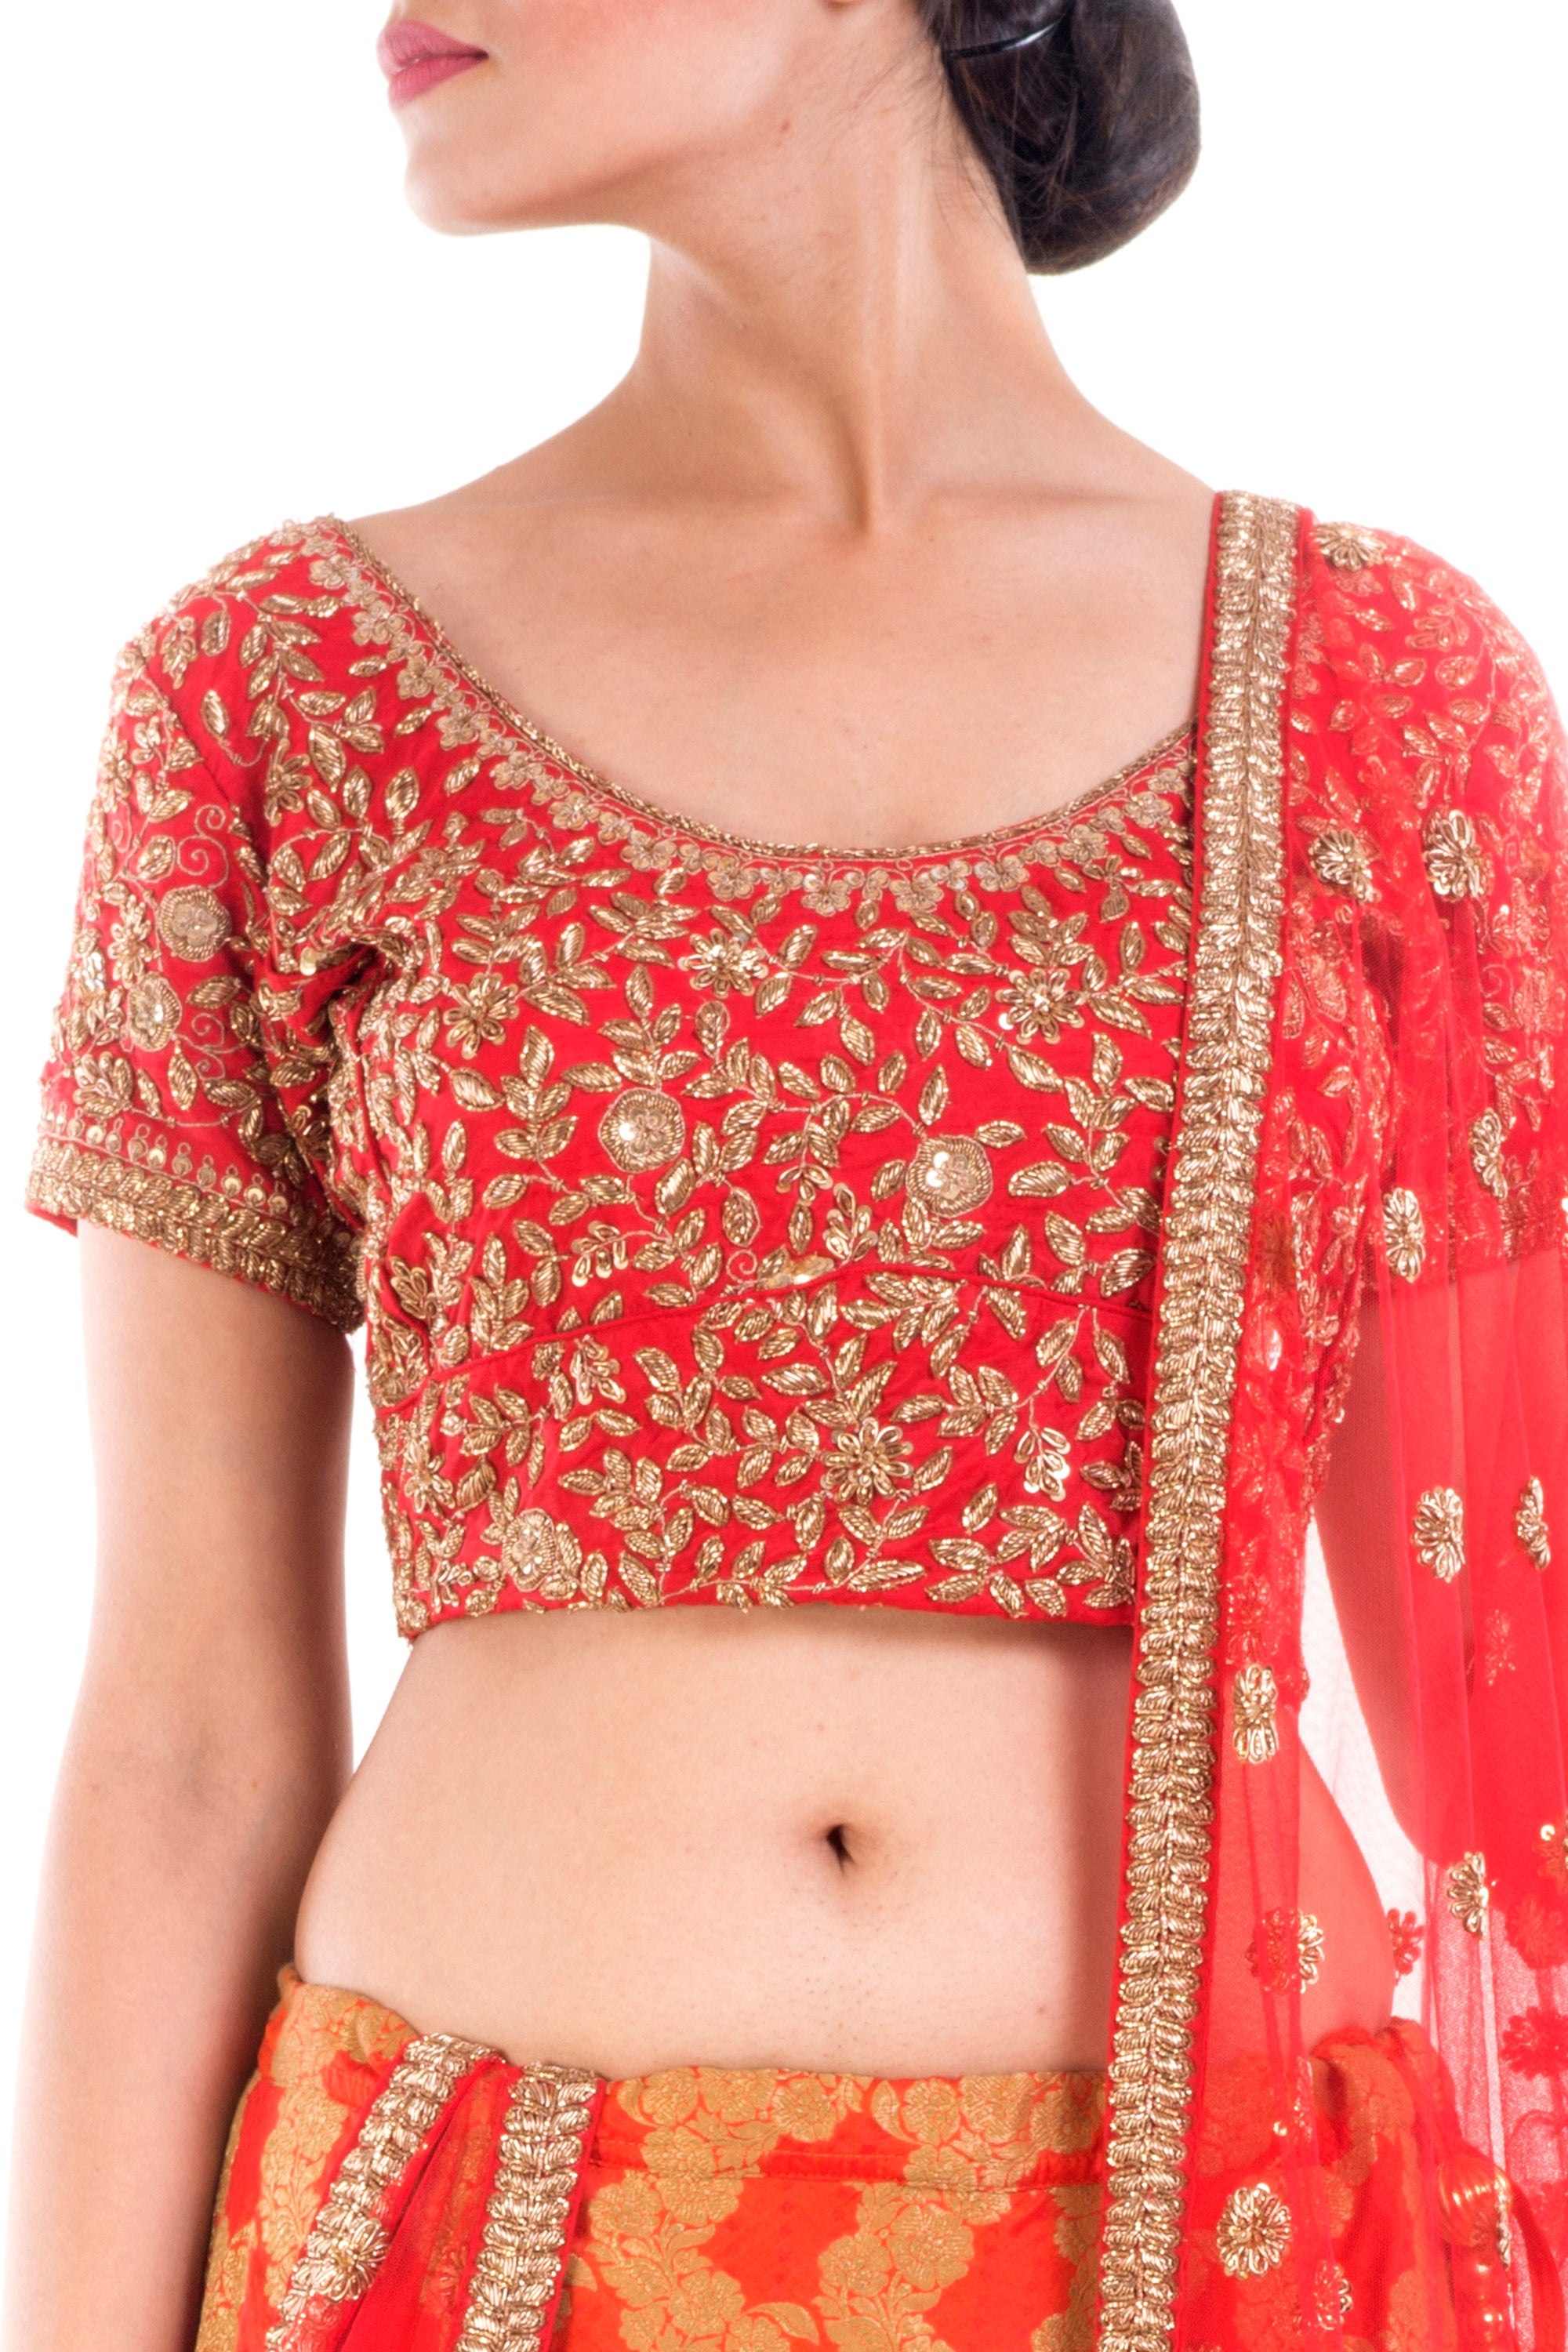 Crimson Red Gold Embellished Bridal Lehenga Closeup